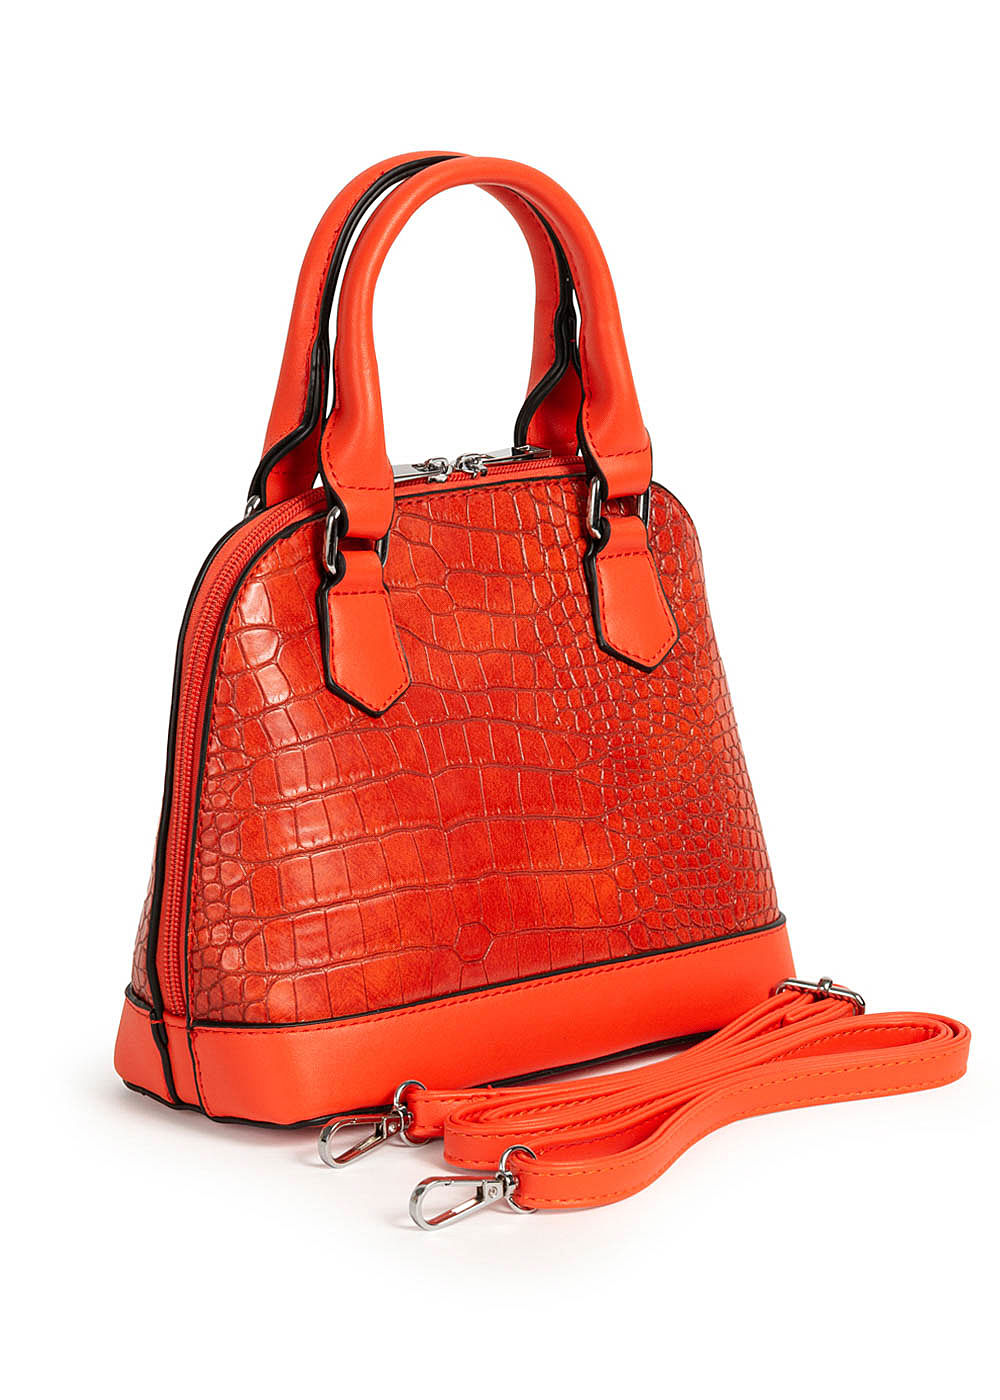 Styleboom Fashion Damen Mini Handtasche Schlangenhaut Optik ca. 24x19cm orange - Art.-Nr.: 20063202-OS-OR